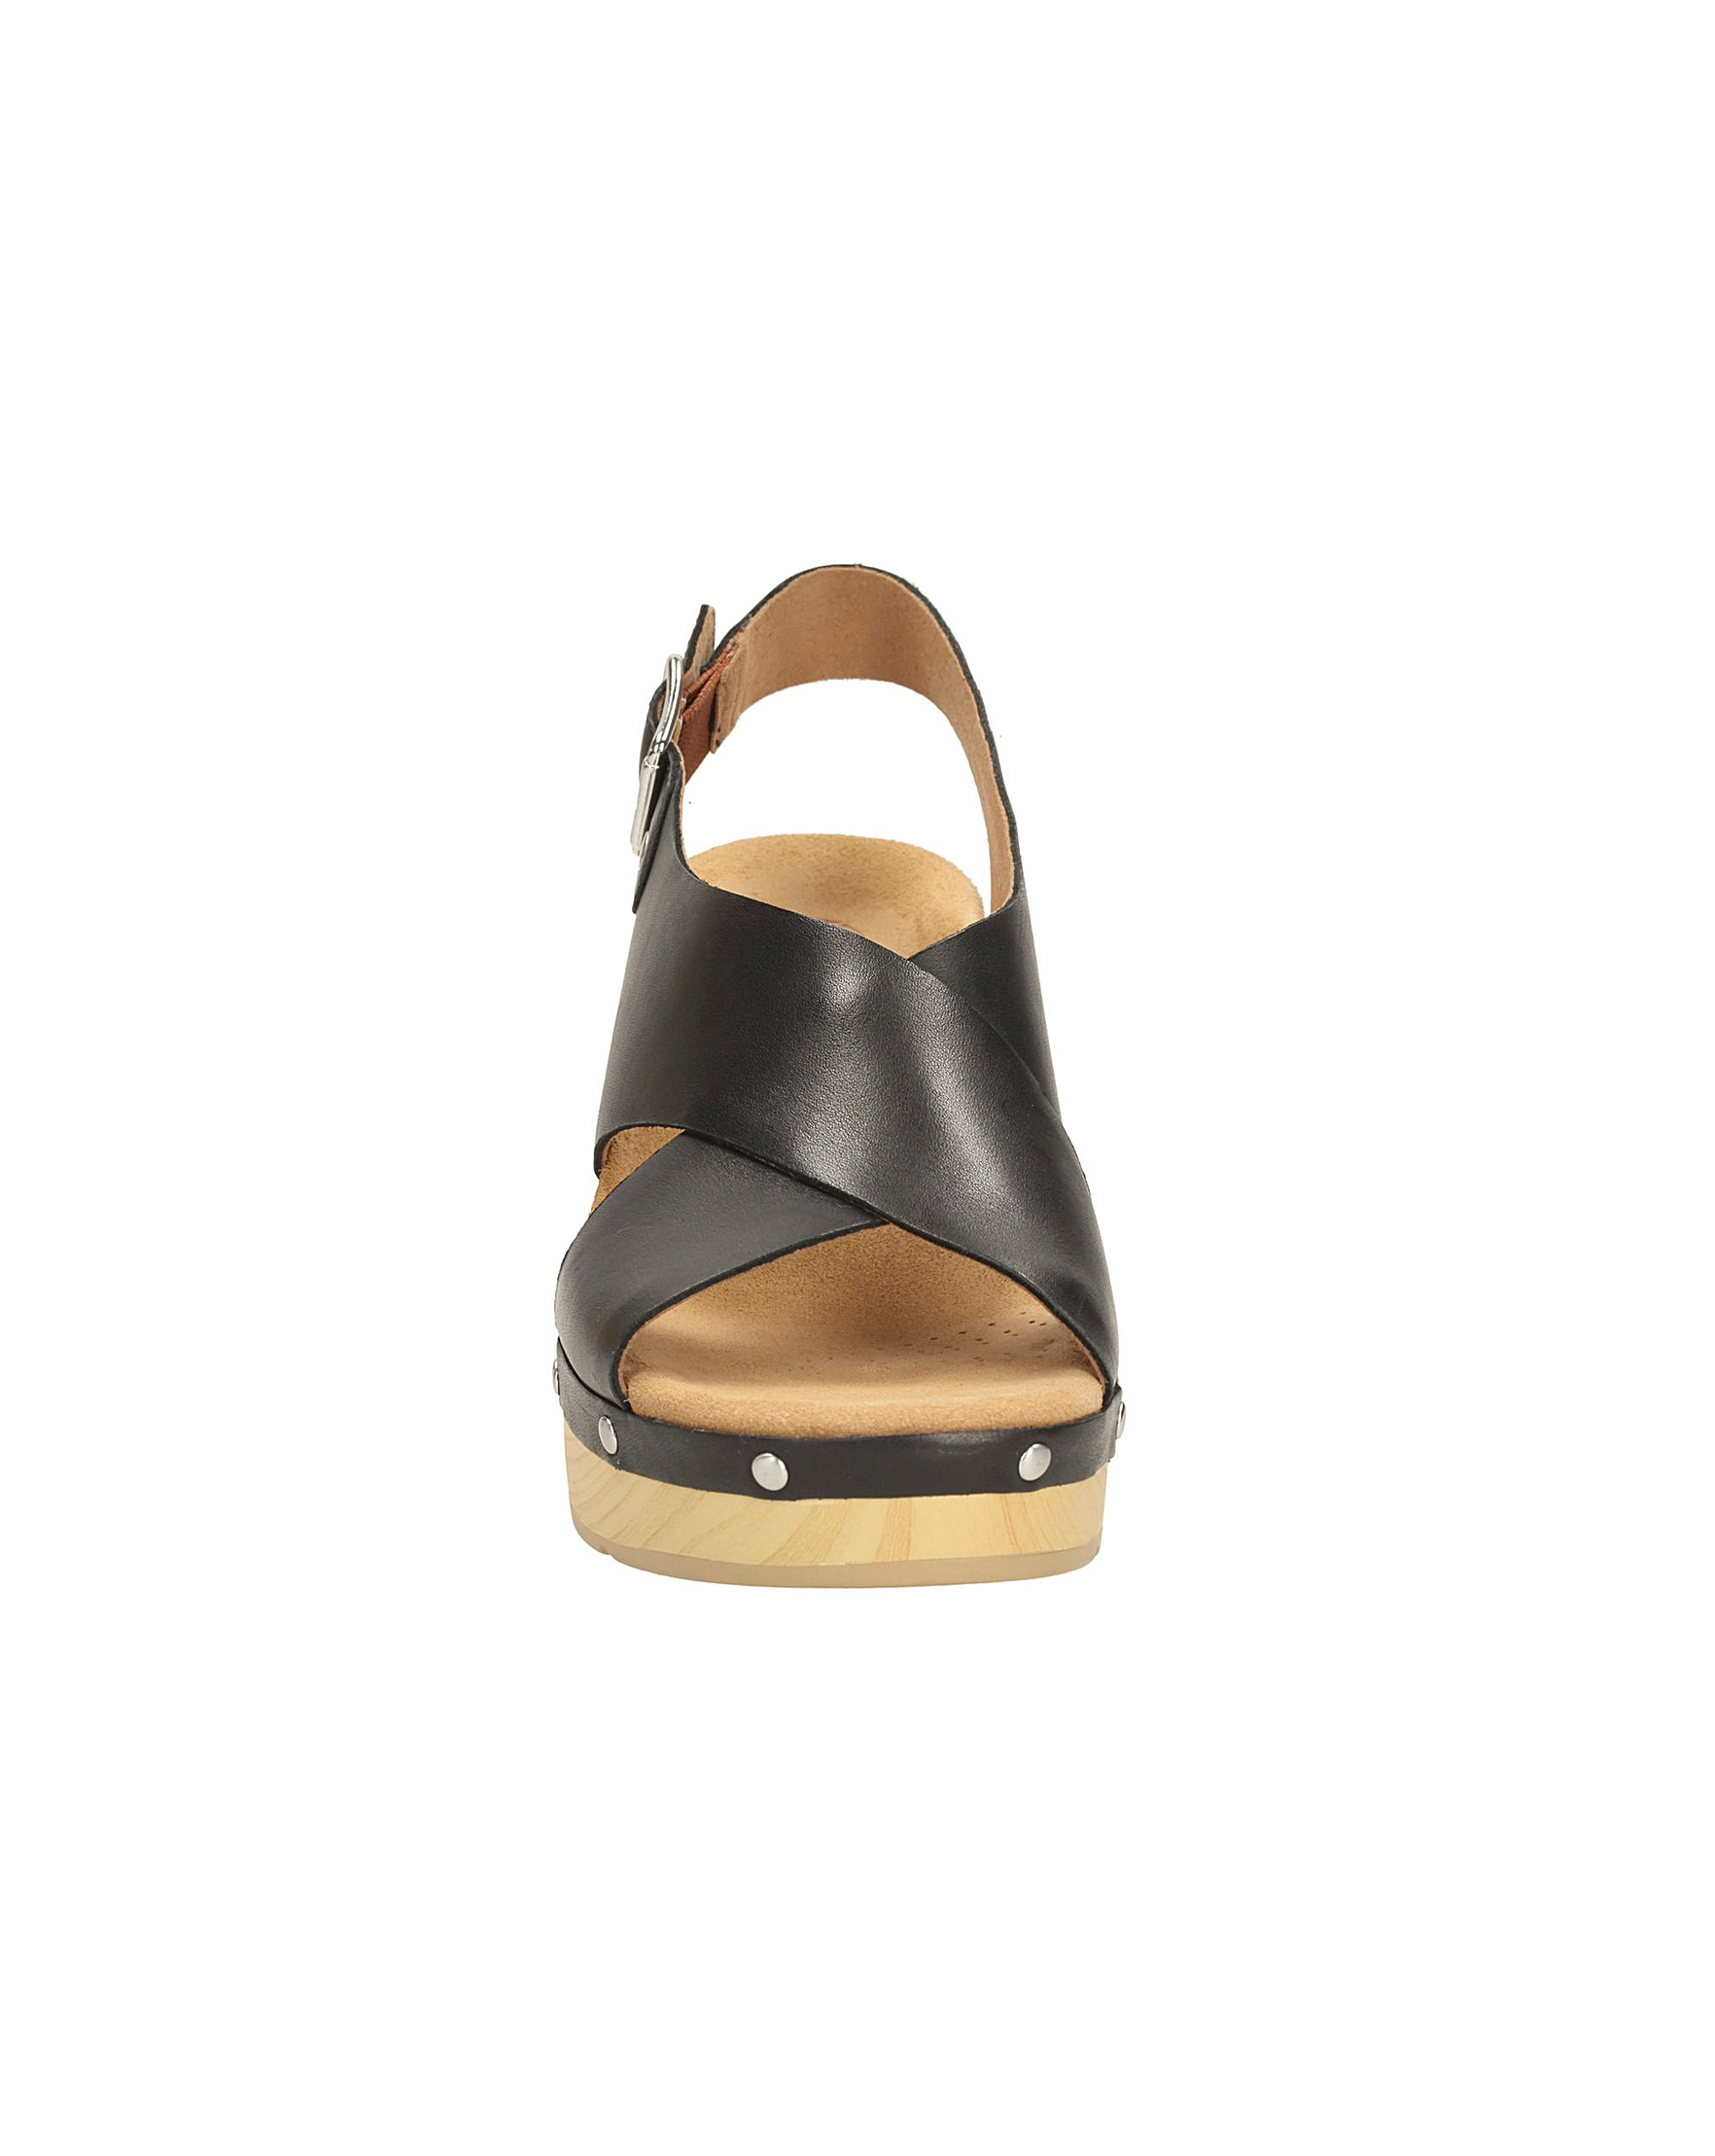 1b359688f15 Clarks Ledella Club Sandals